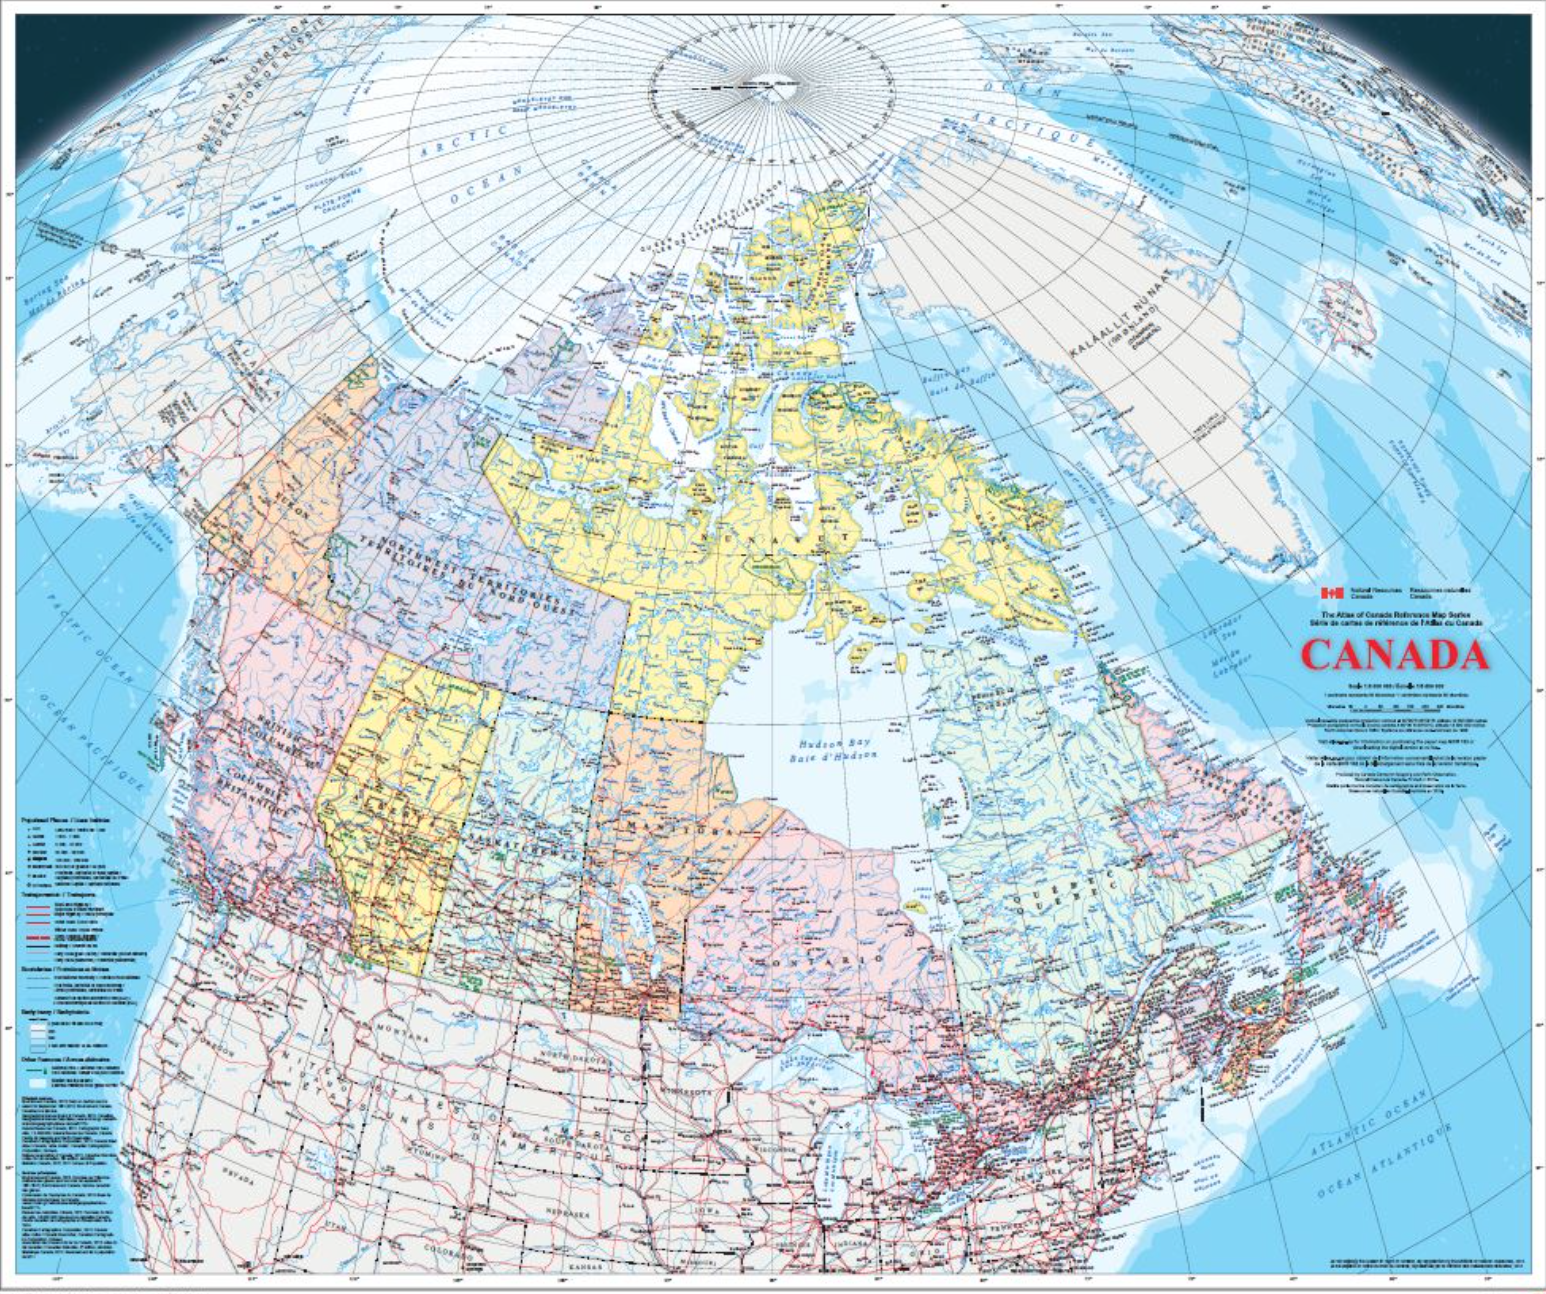 Canada with Polar Claims, Parks